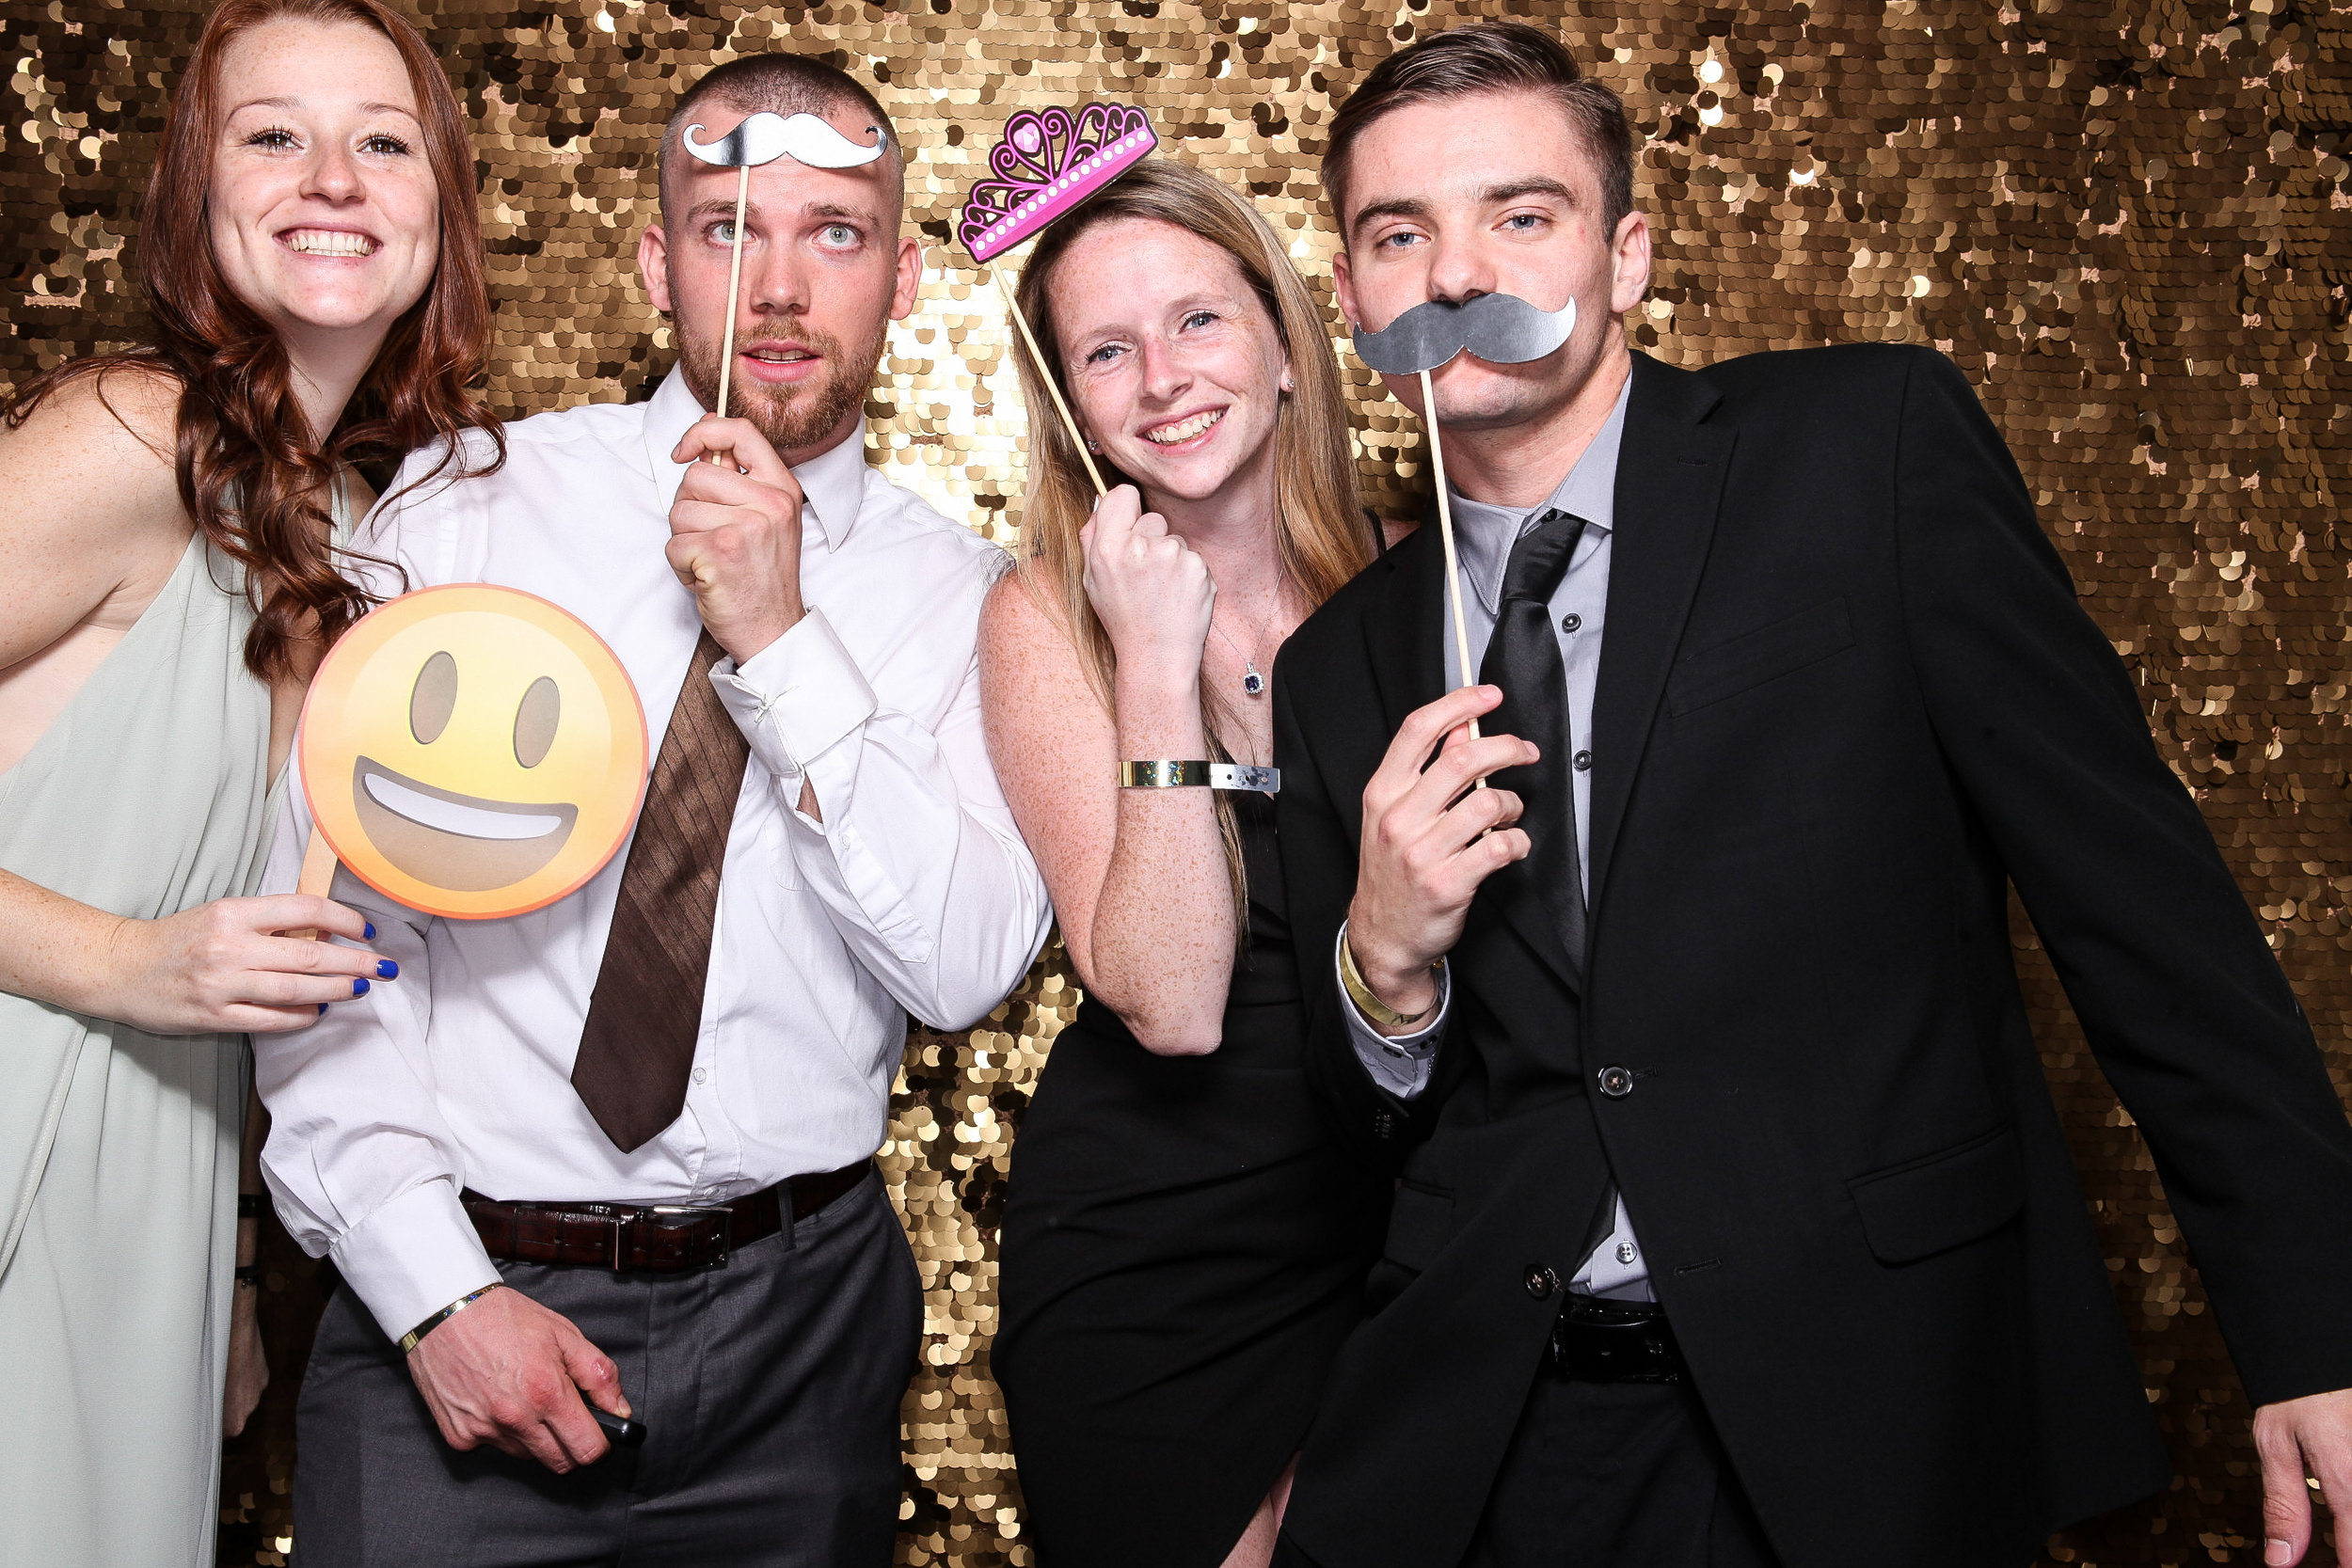 20190503_Adelphi_Senior_Formal-230.jpg